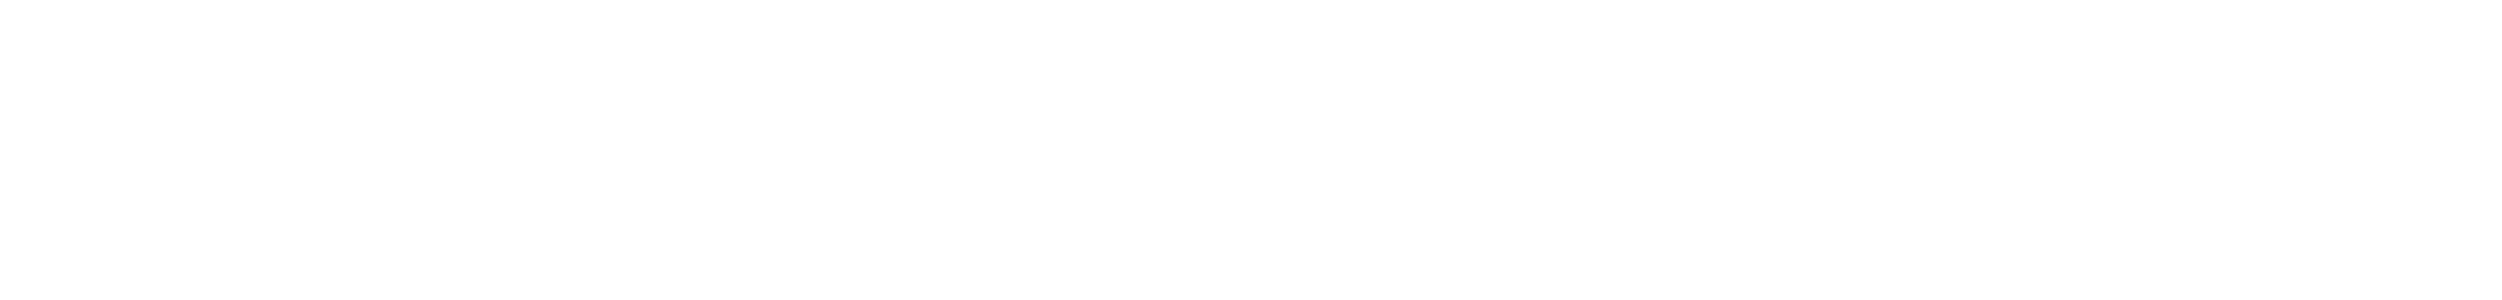 Future of Entertainment Logo